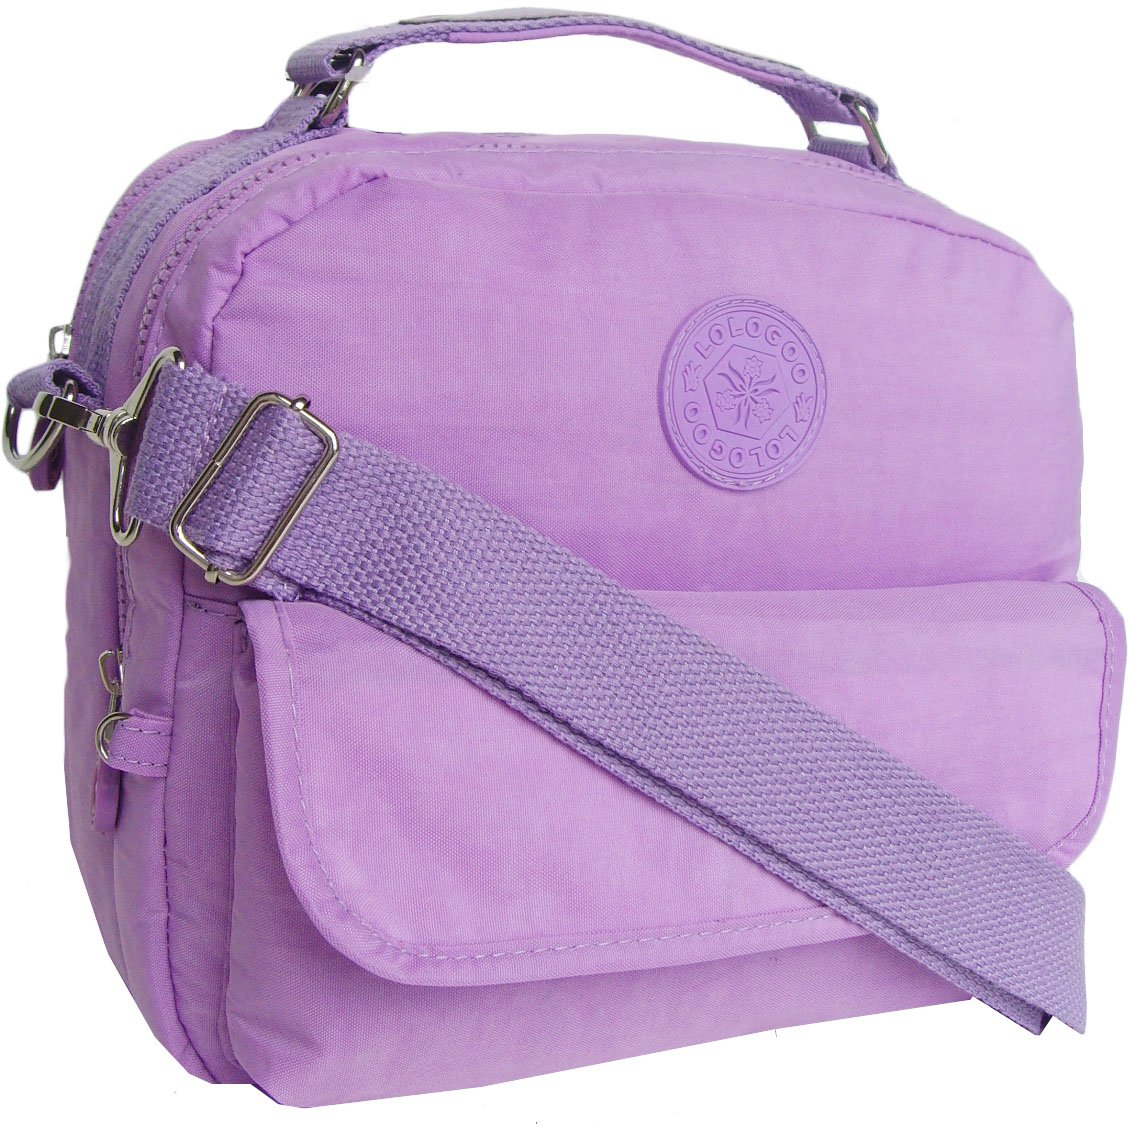 HONG YE Pure Stripe Slouch Bag,sku:hb76lightpurple3